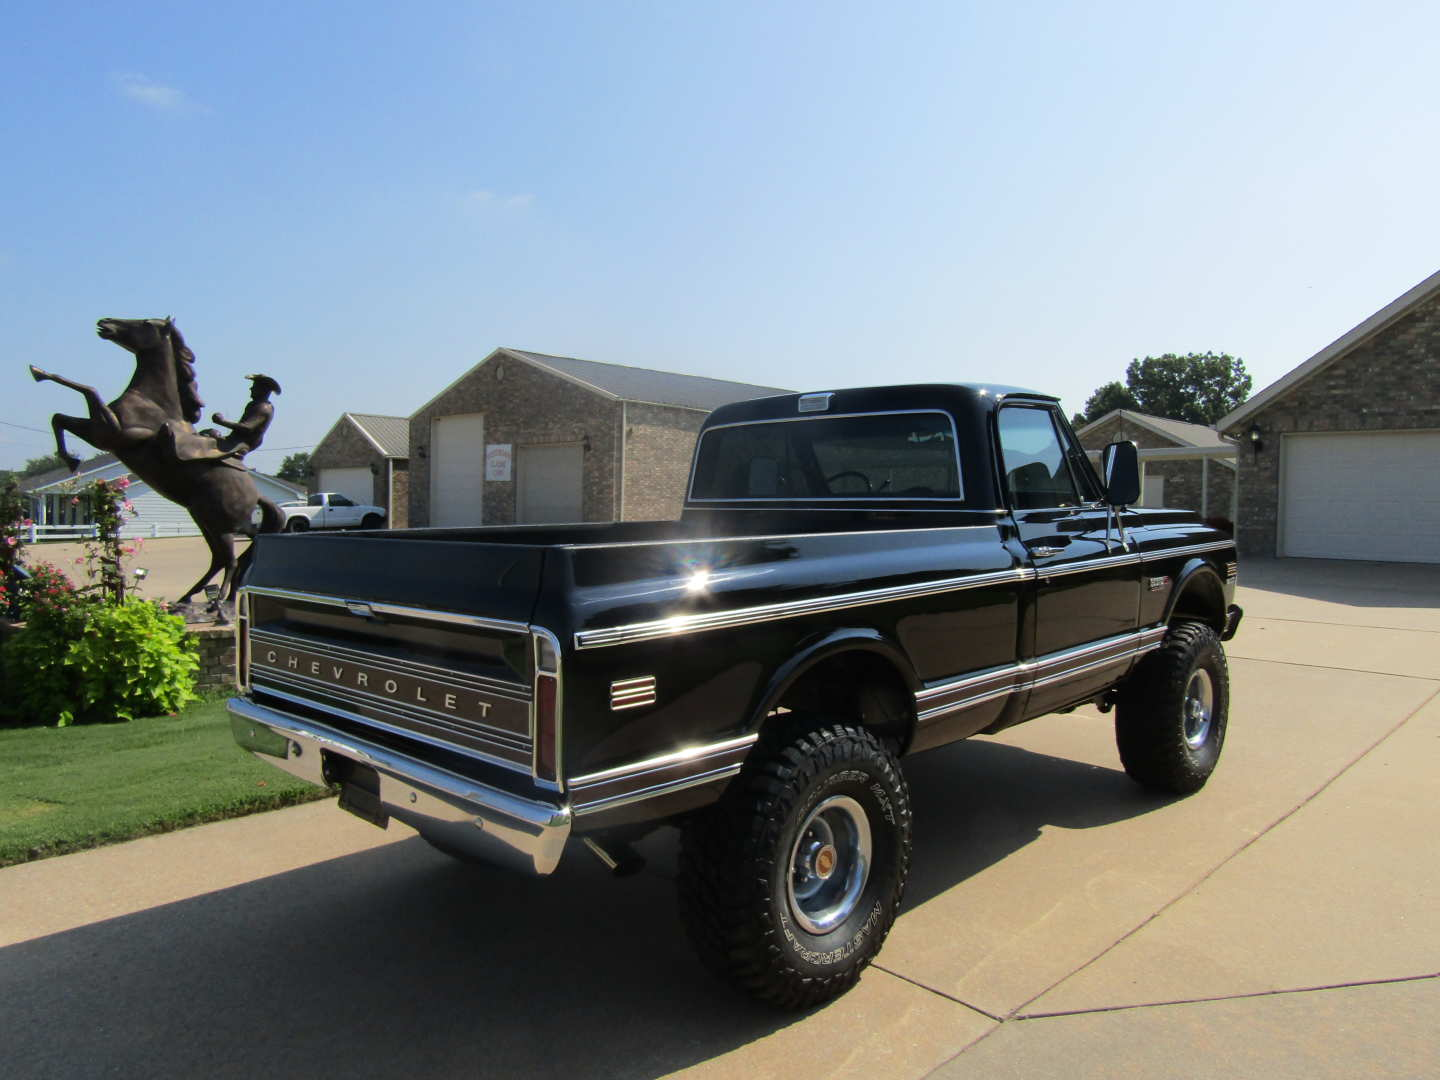 4th Image of a 1972 CHEVROLET CHEYENNE SUPER